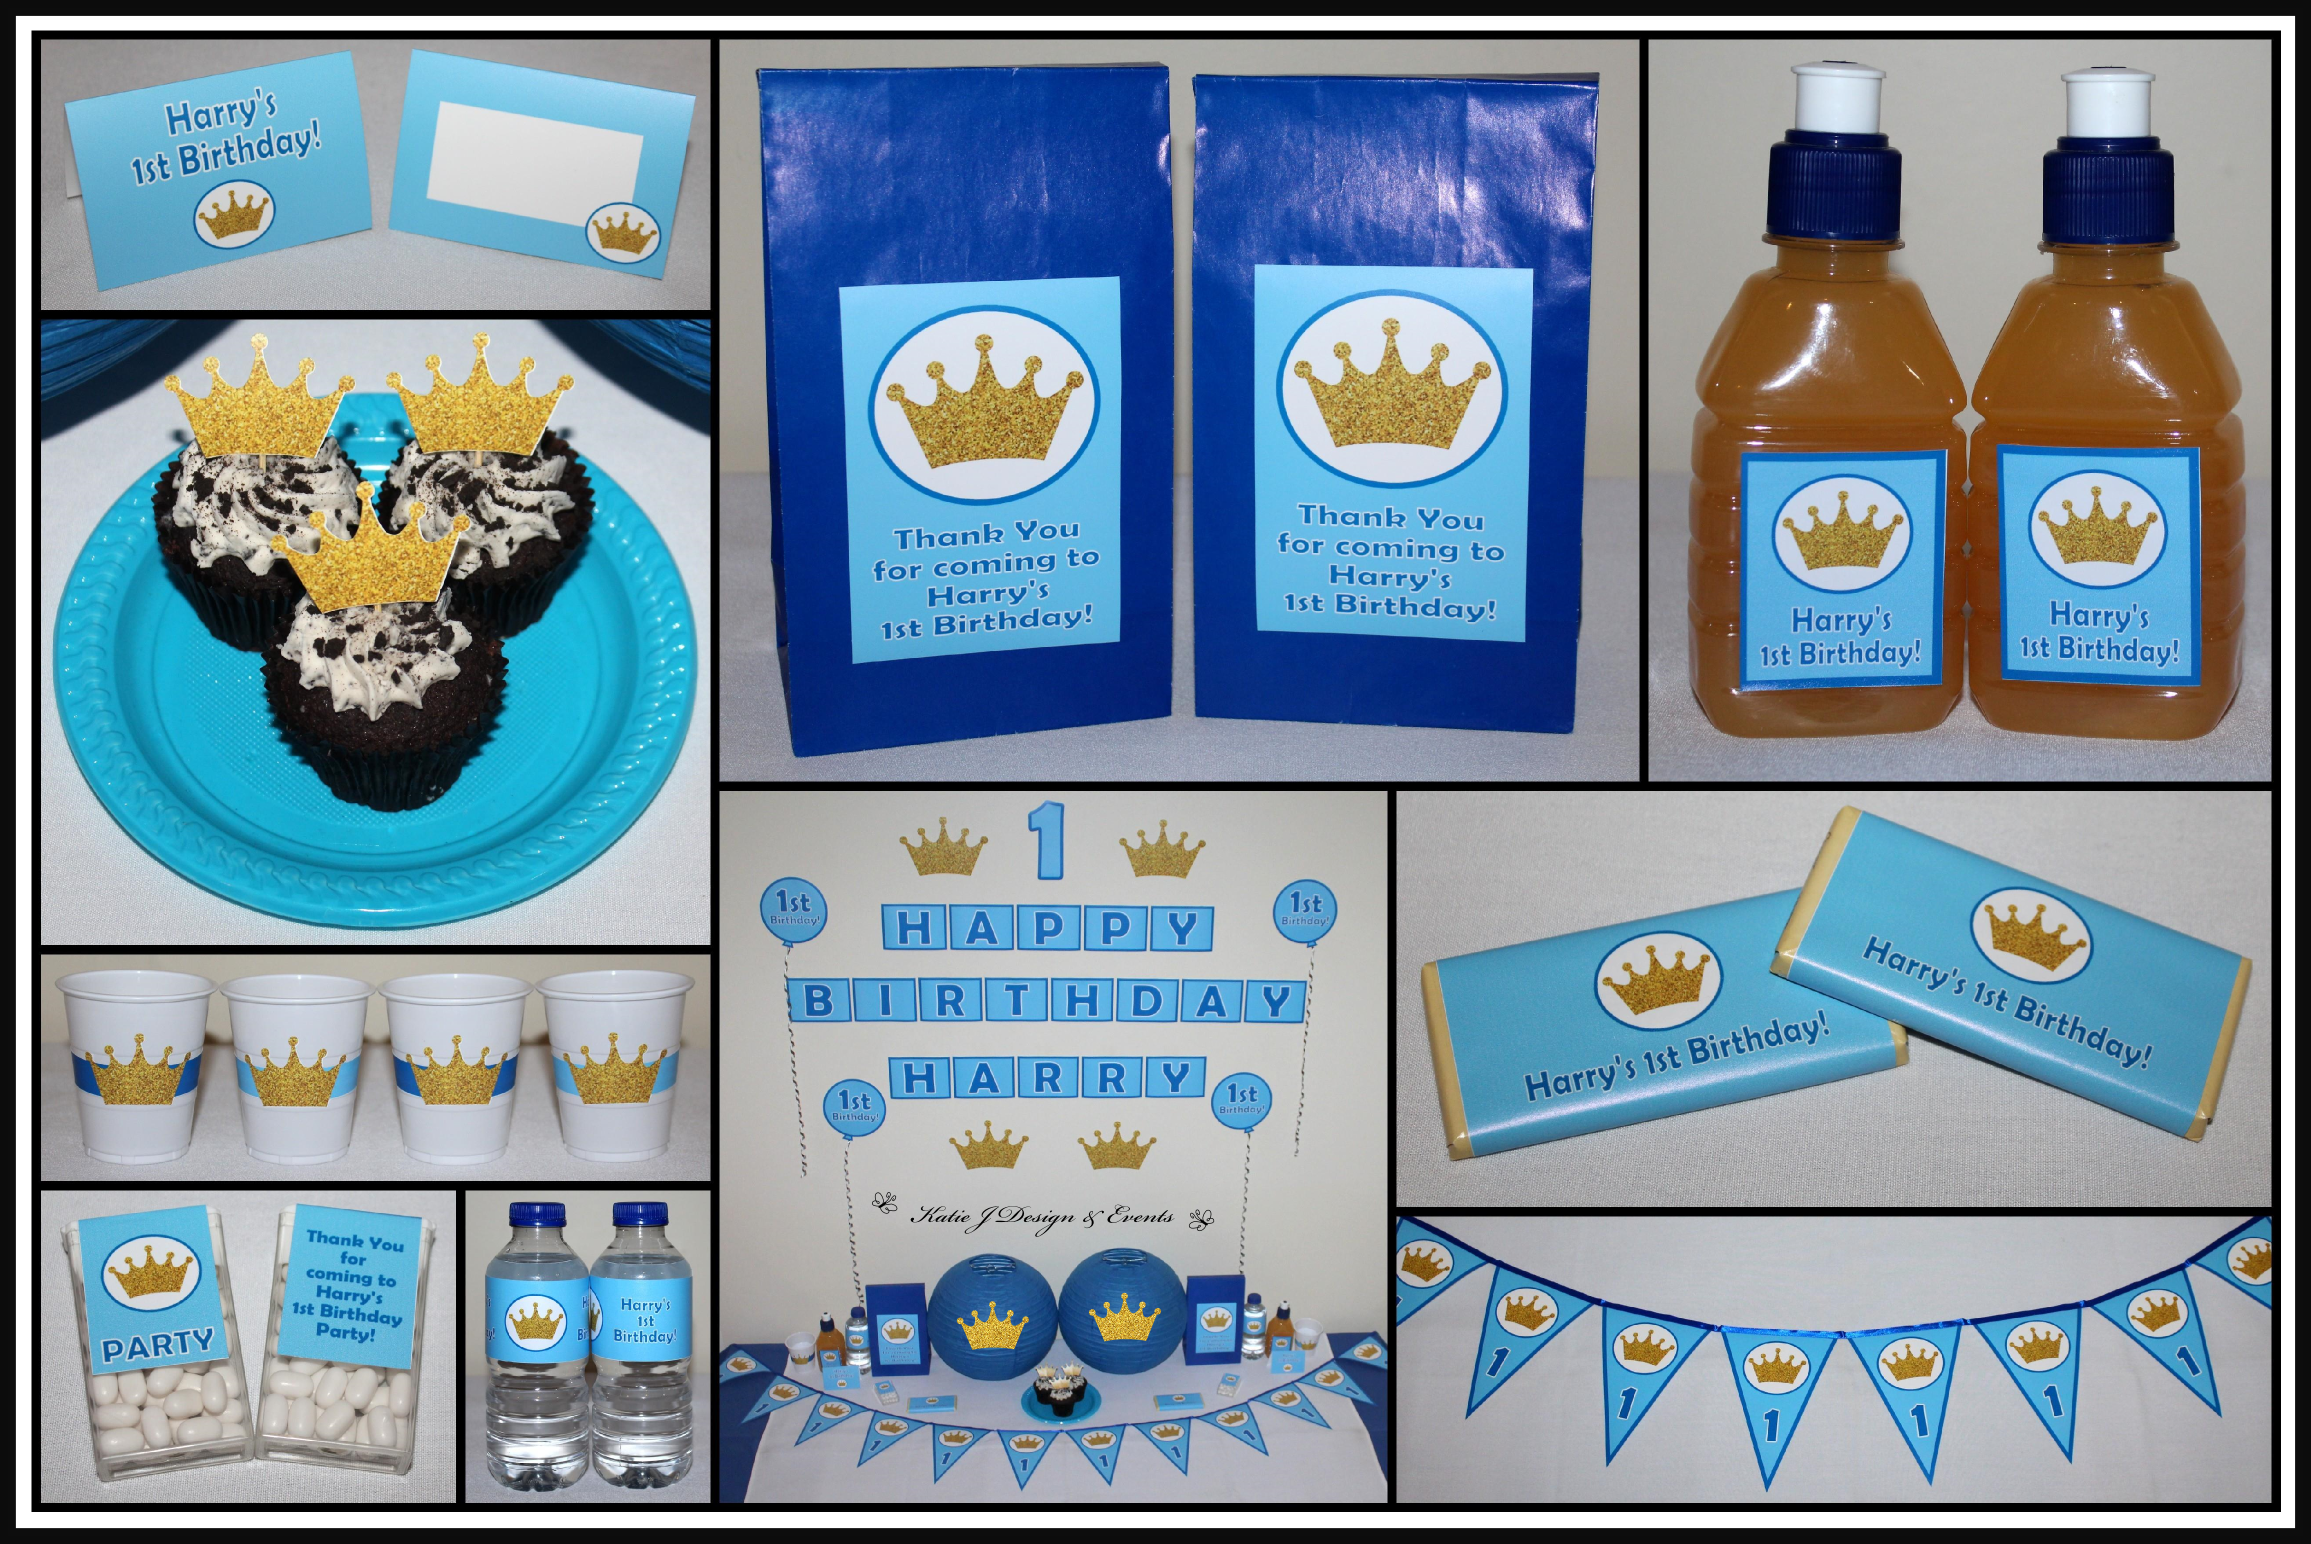 Prince Crowns Royal Blue & Gold Personalised Birthday Party Decorations